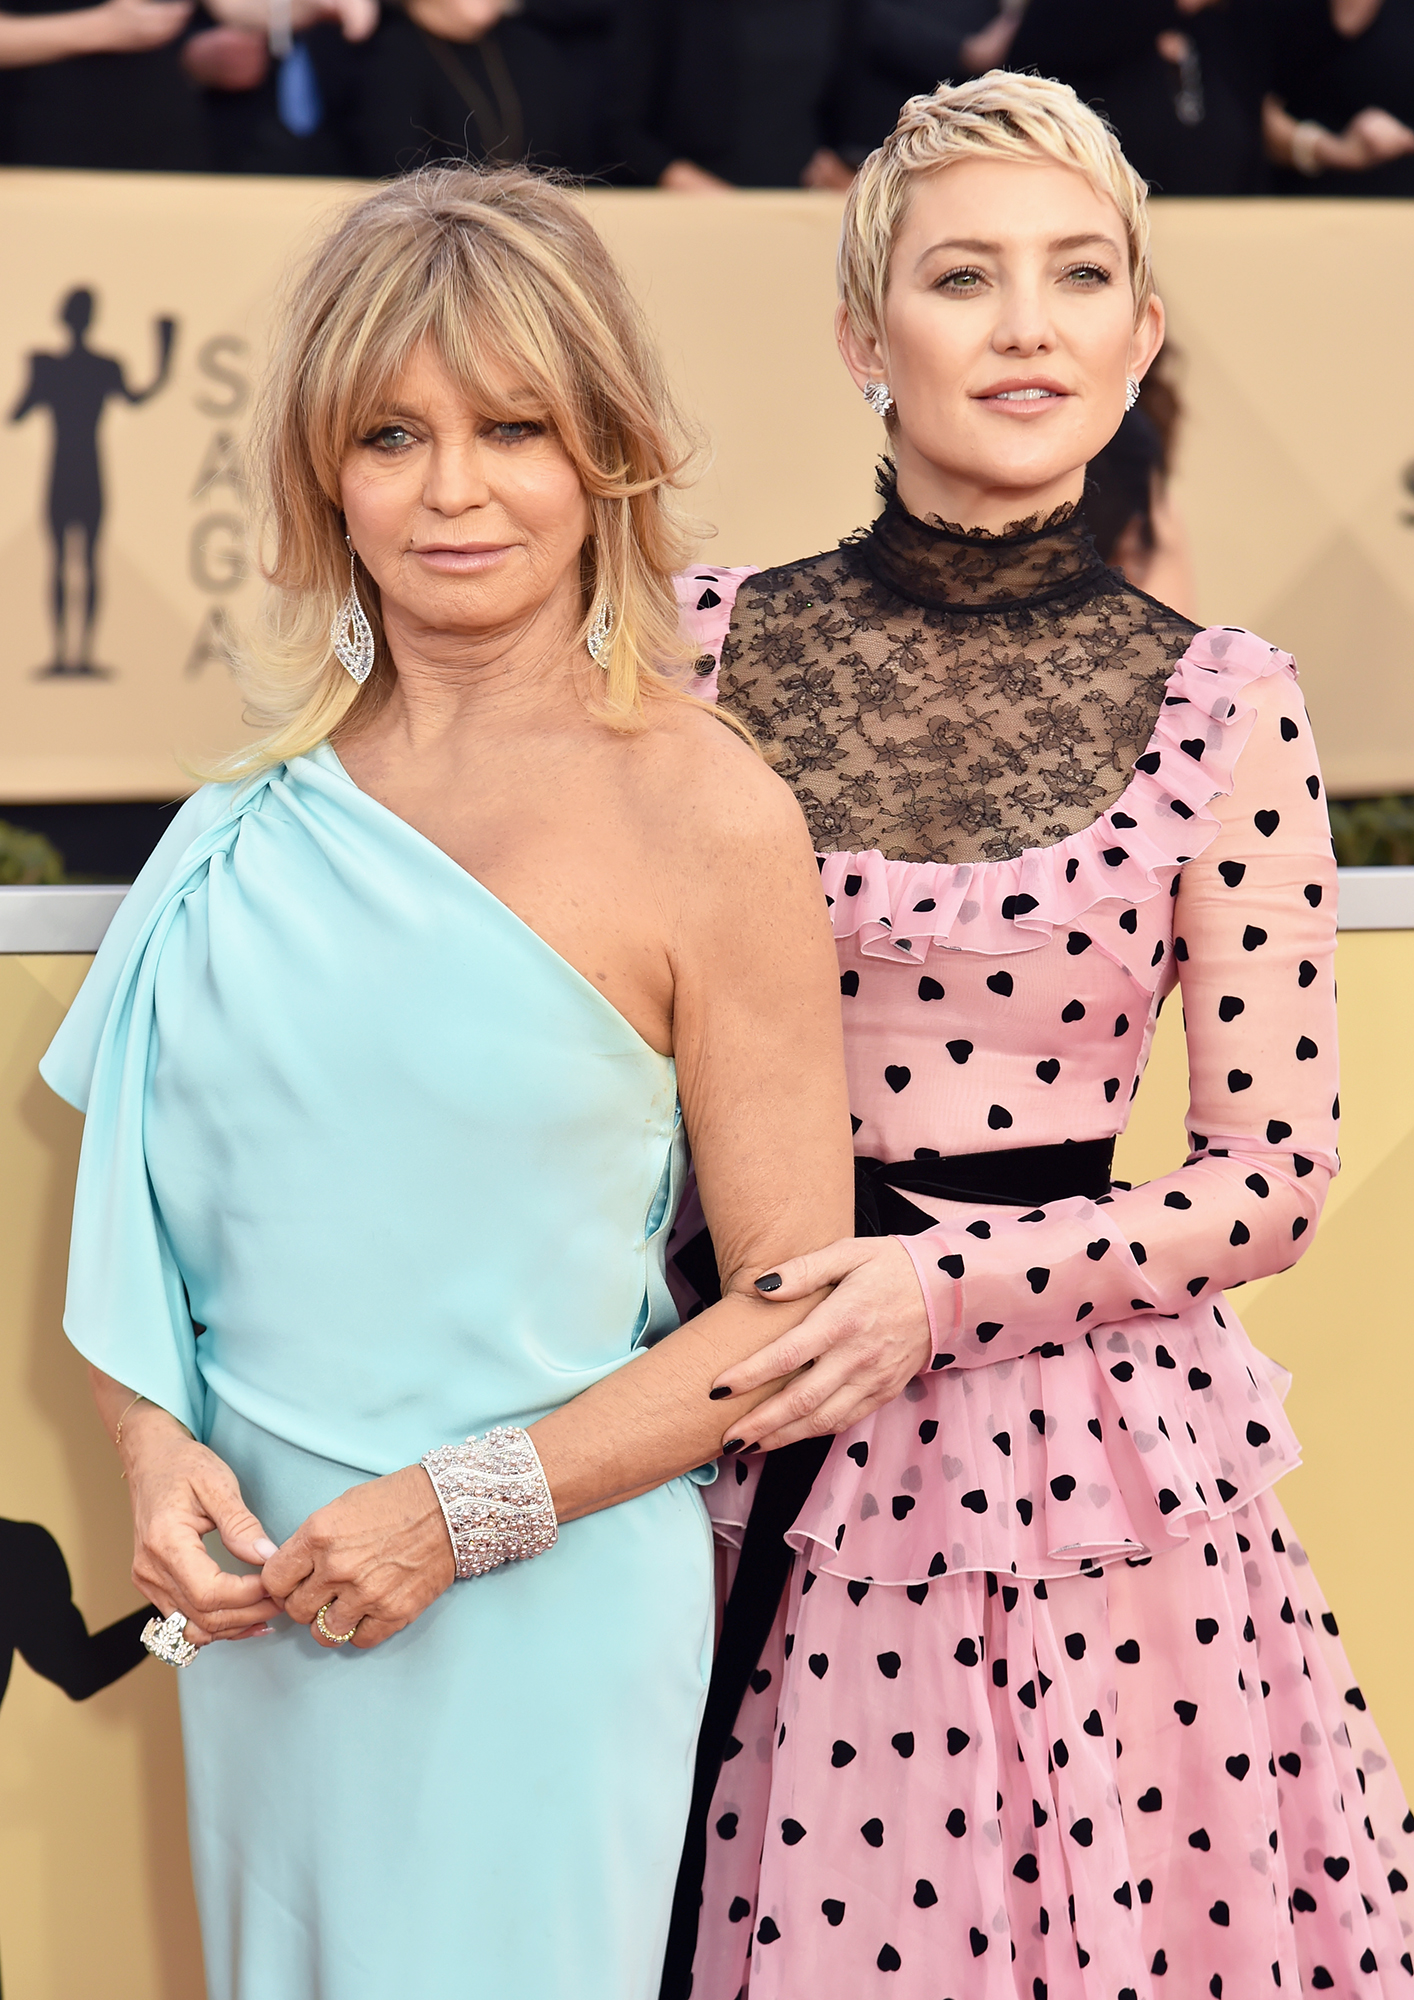 Famous Mother-Daughter Pairs - Goldie Hawn and Kate Hudson attend the 24th Annual Screen Actors Guild Awards at The Shrine Auditorium on January 21, 2018 in Los Angeles, California.